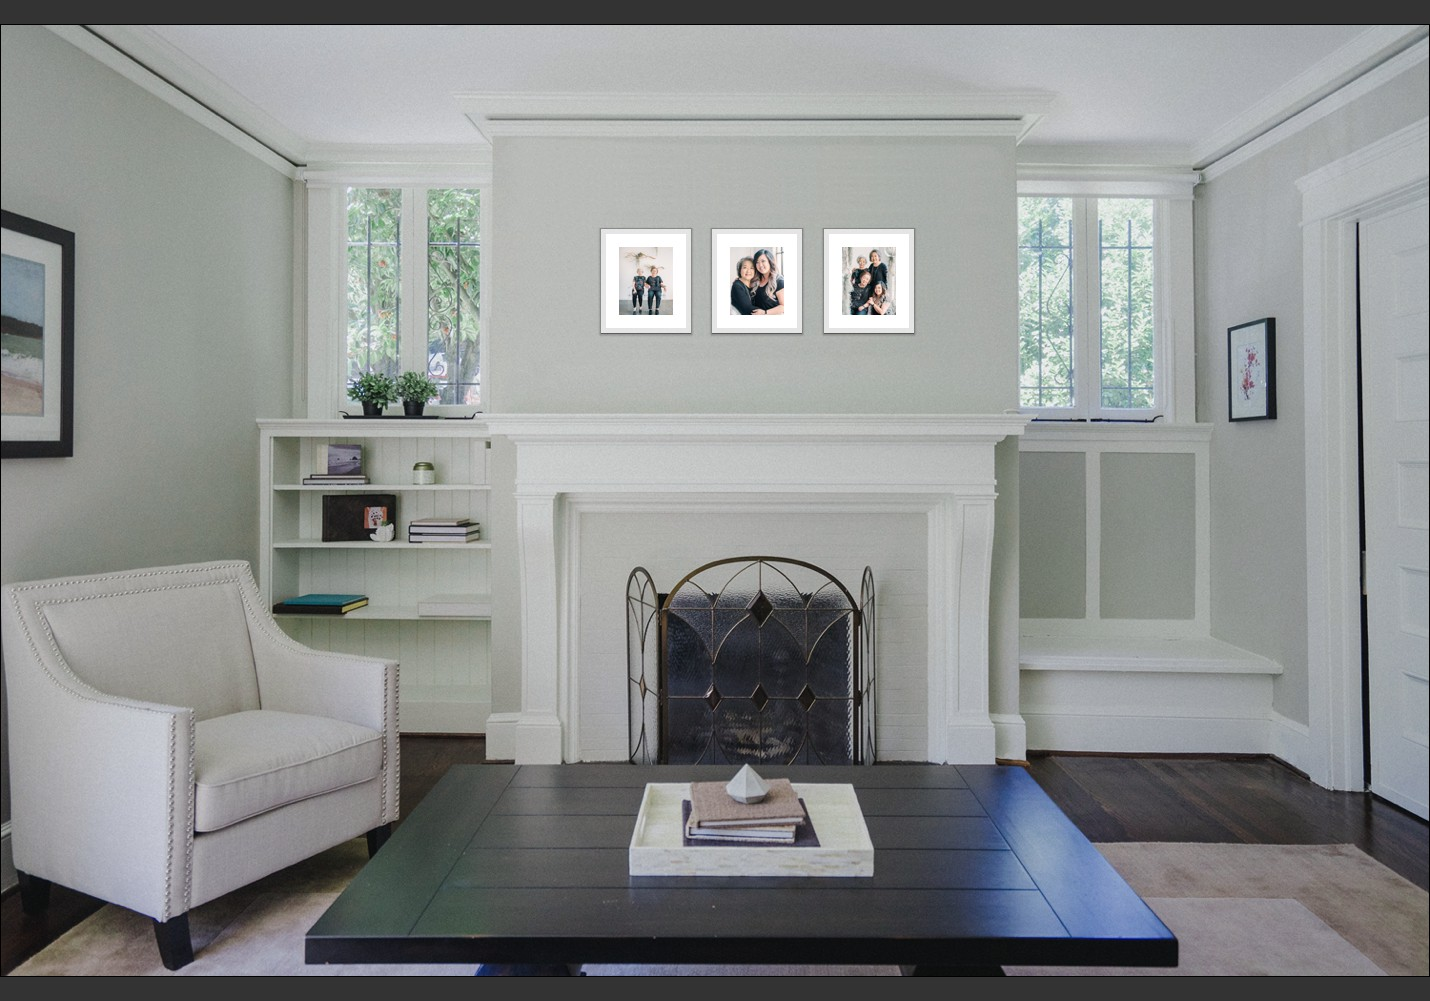 Photo of fireplace with three photos displayed above it